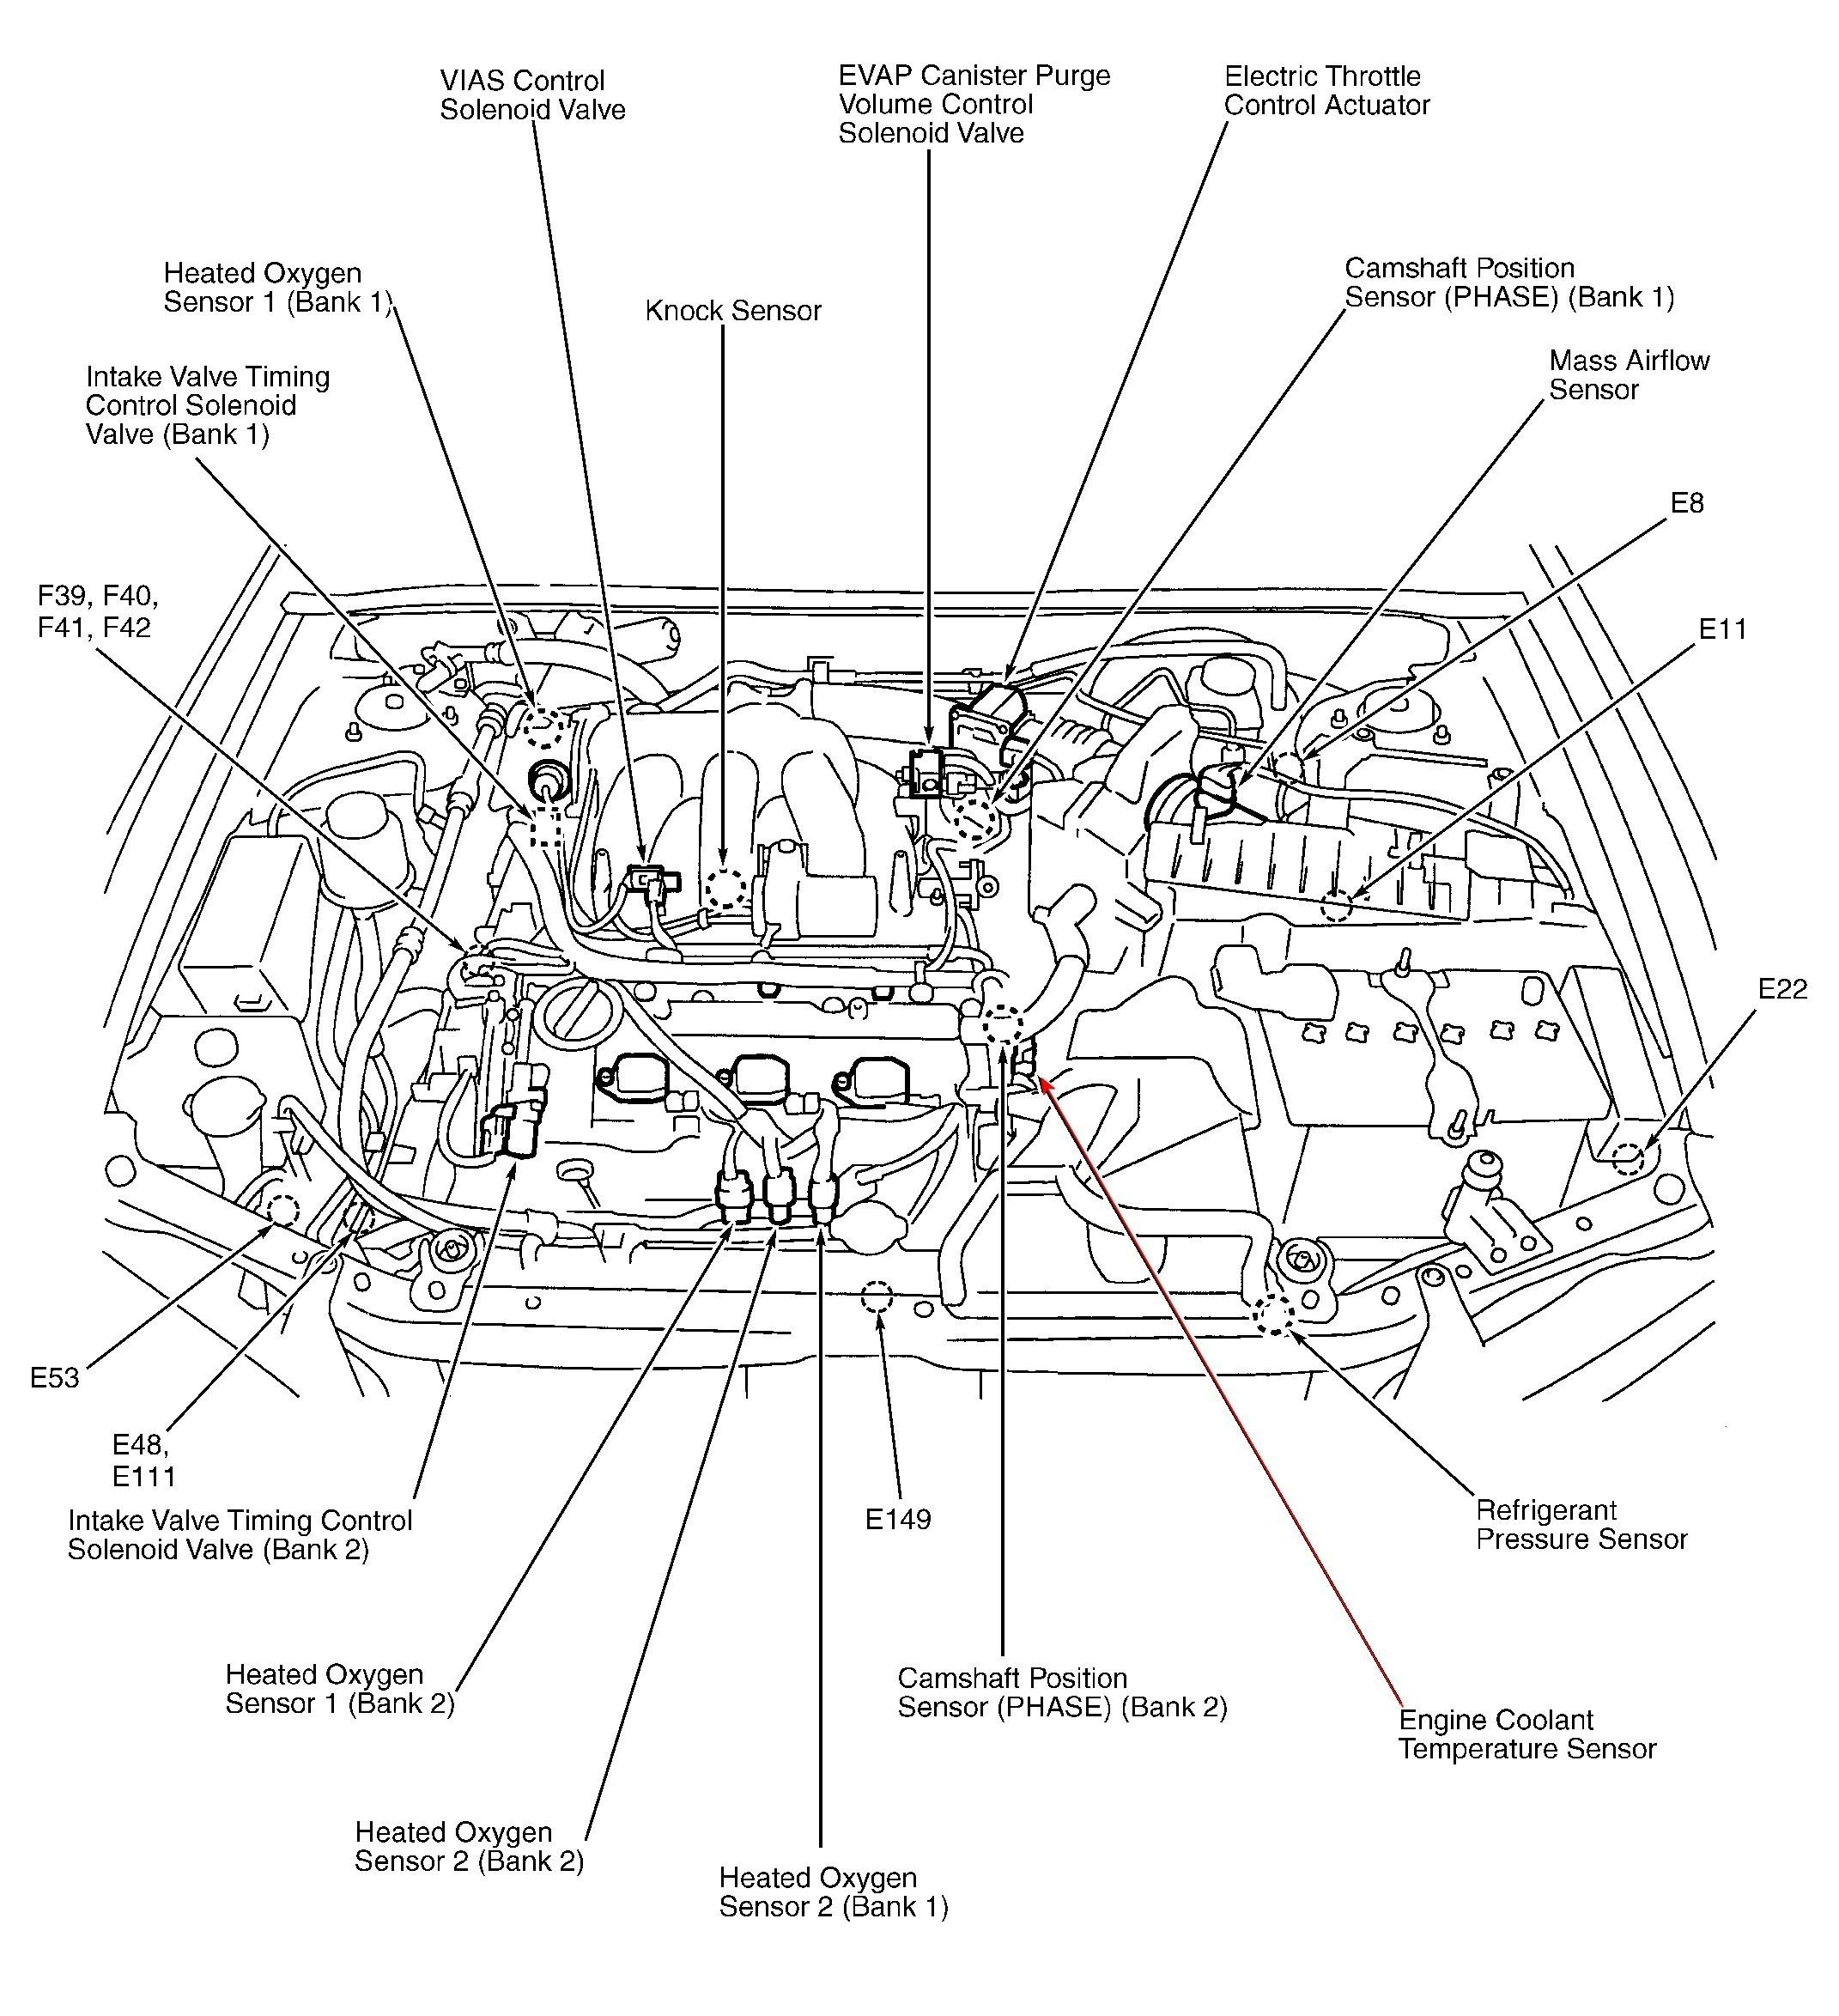 Car Radiator Parts Diagram Car Engine Labeled Diagram Inspirational Engine Parts Diagram with Of Car Radiator Parts Diagram